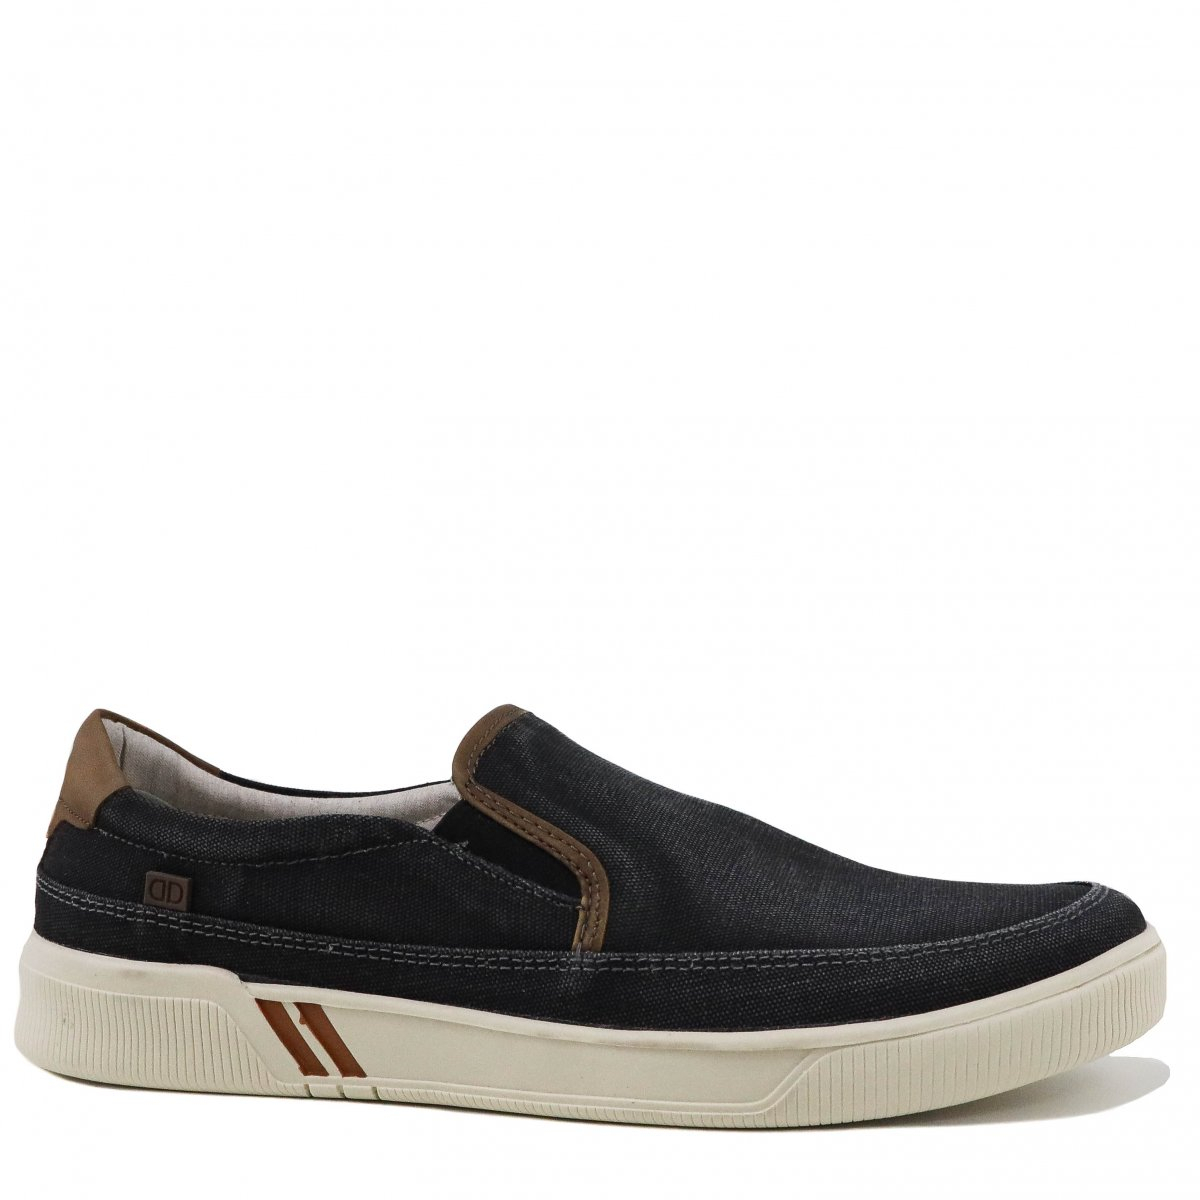 Tenis Democrata Urban Slip On Lona Preto